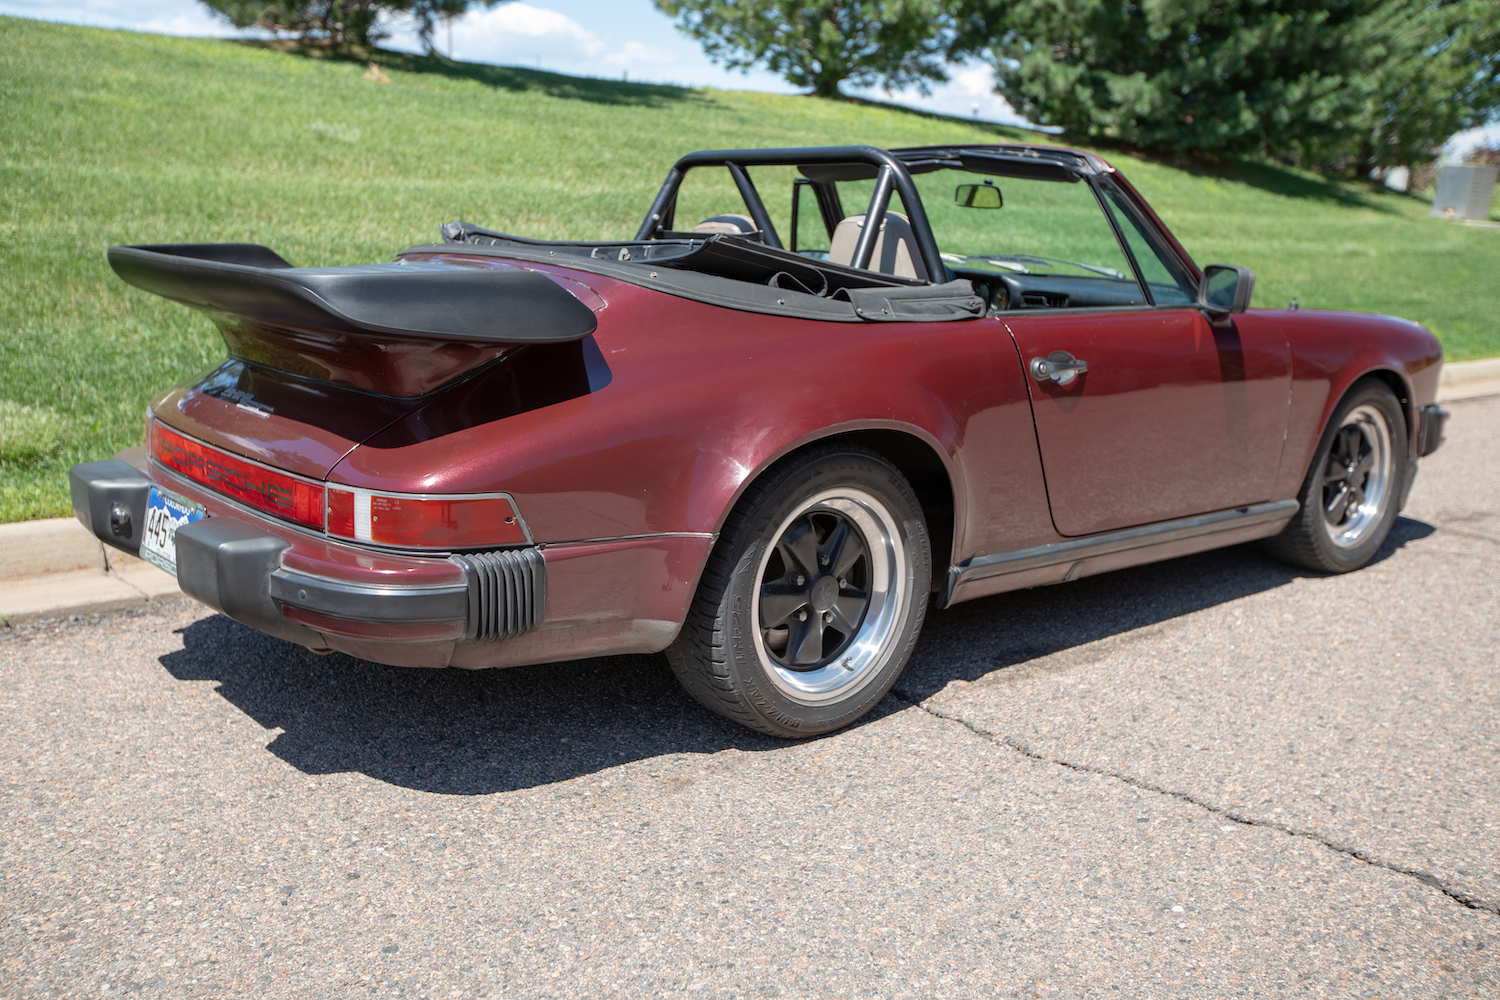 1983 Porsche 911SC Cabriolet rear three-quarter